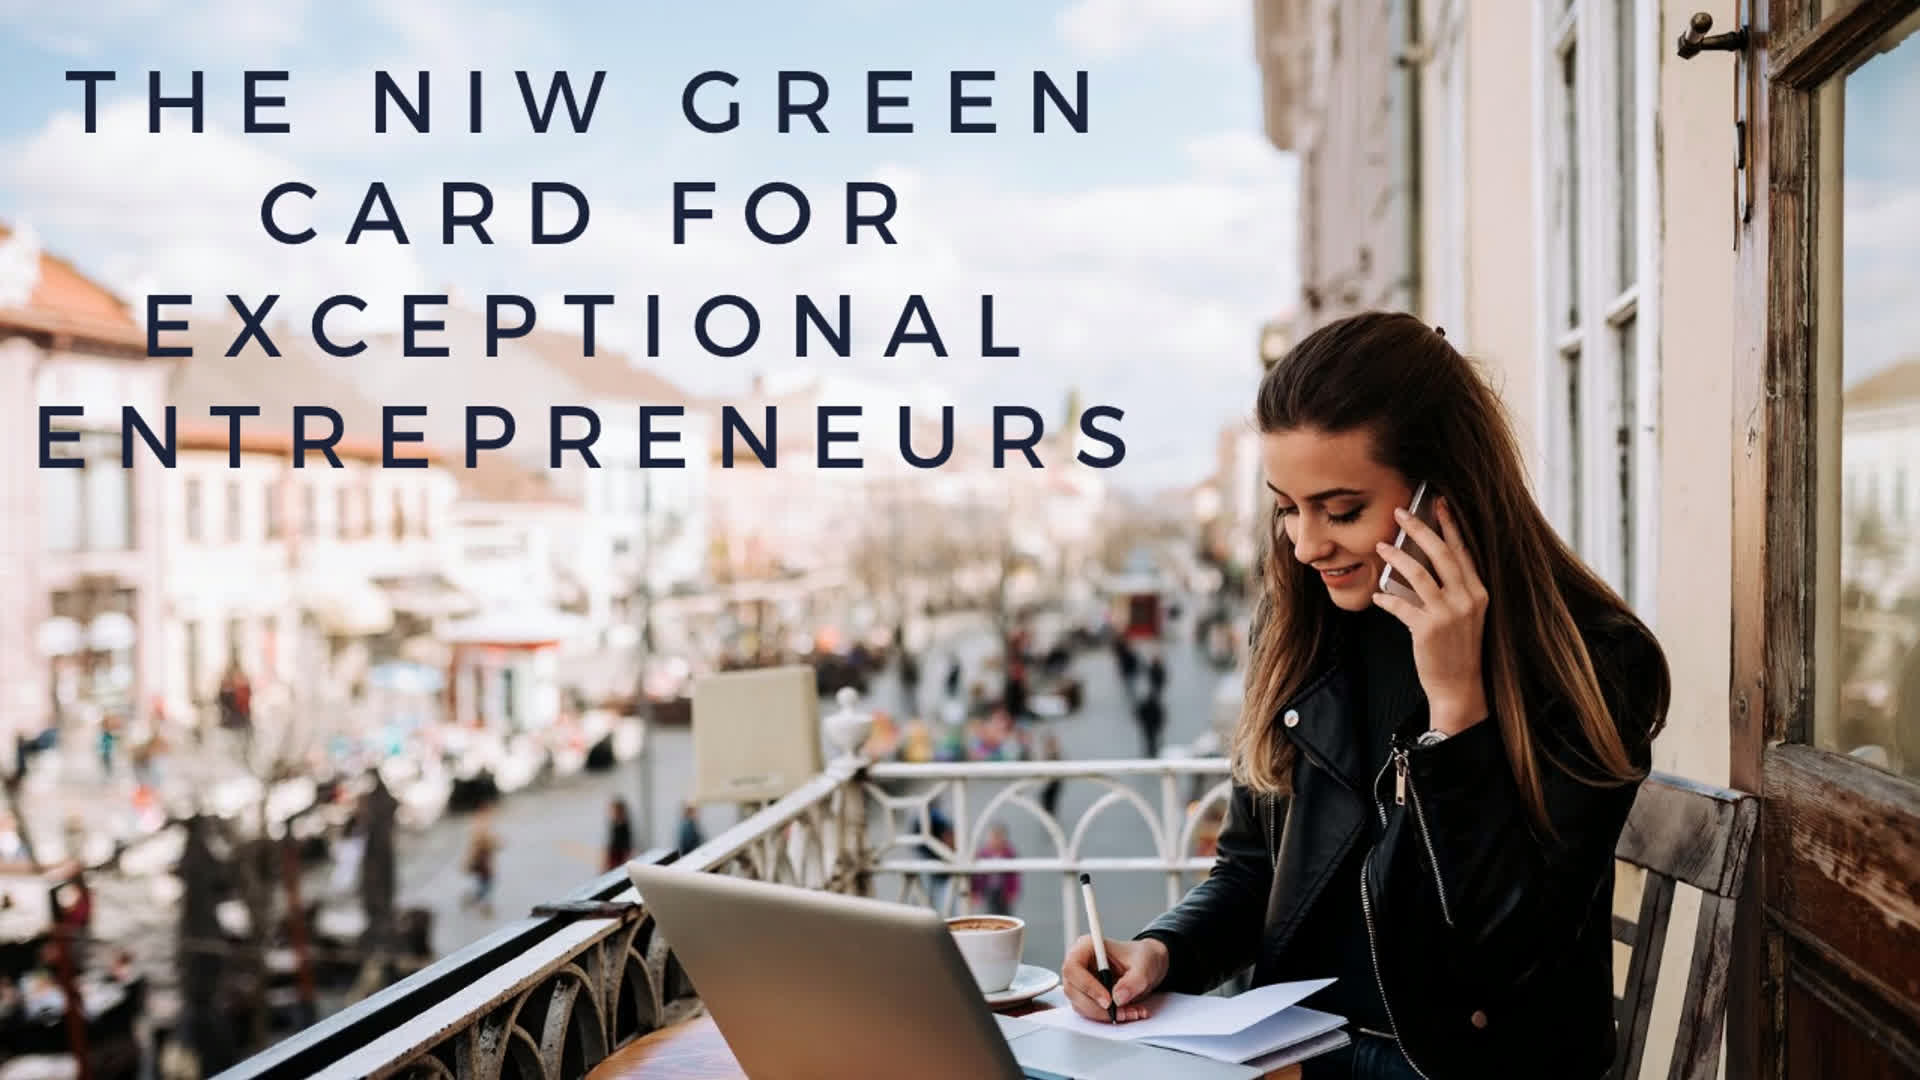 The NIW Green Card for Exceptional Entrepreneurs